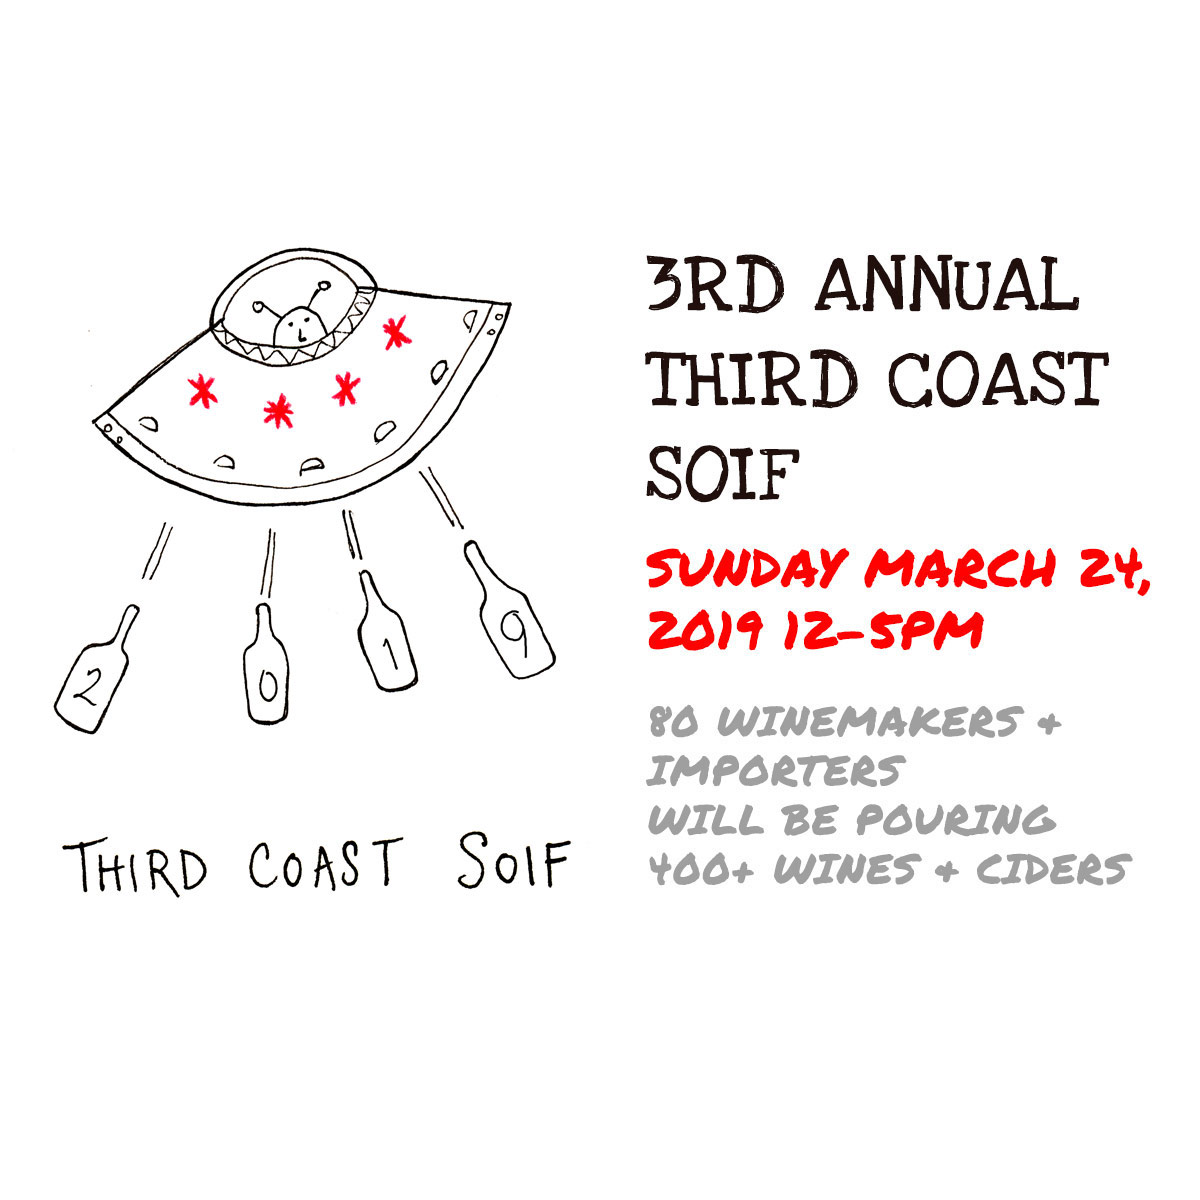 THIRD COAST SOIF